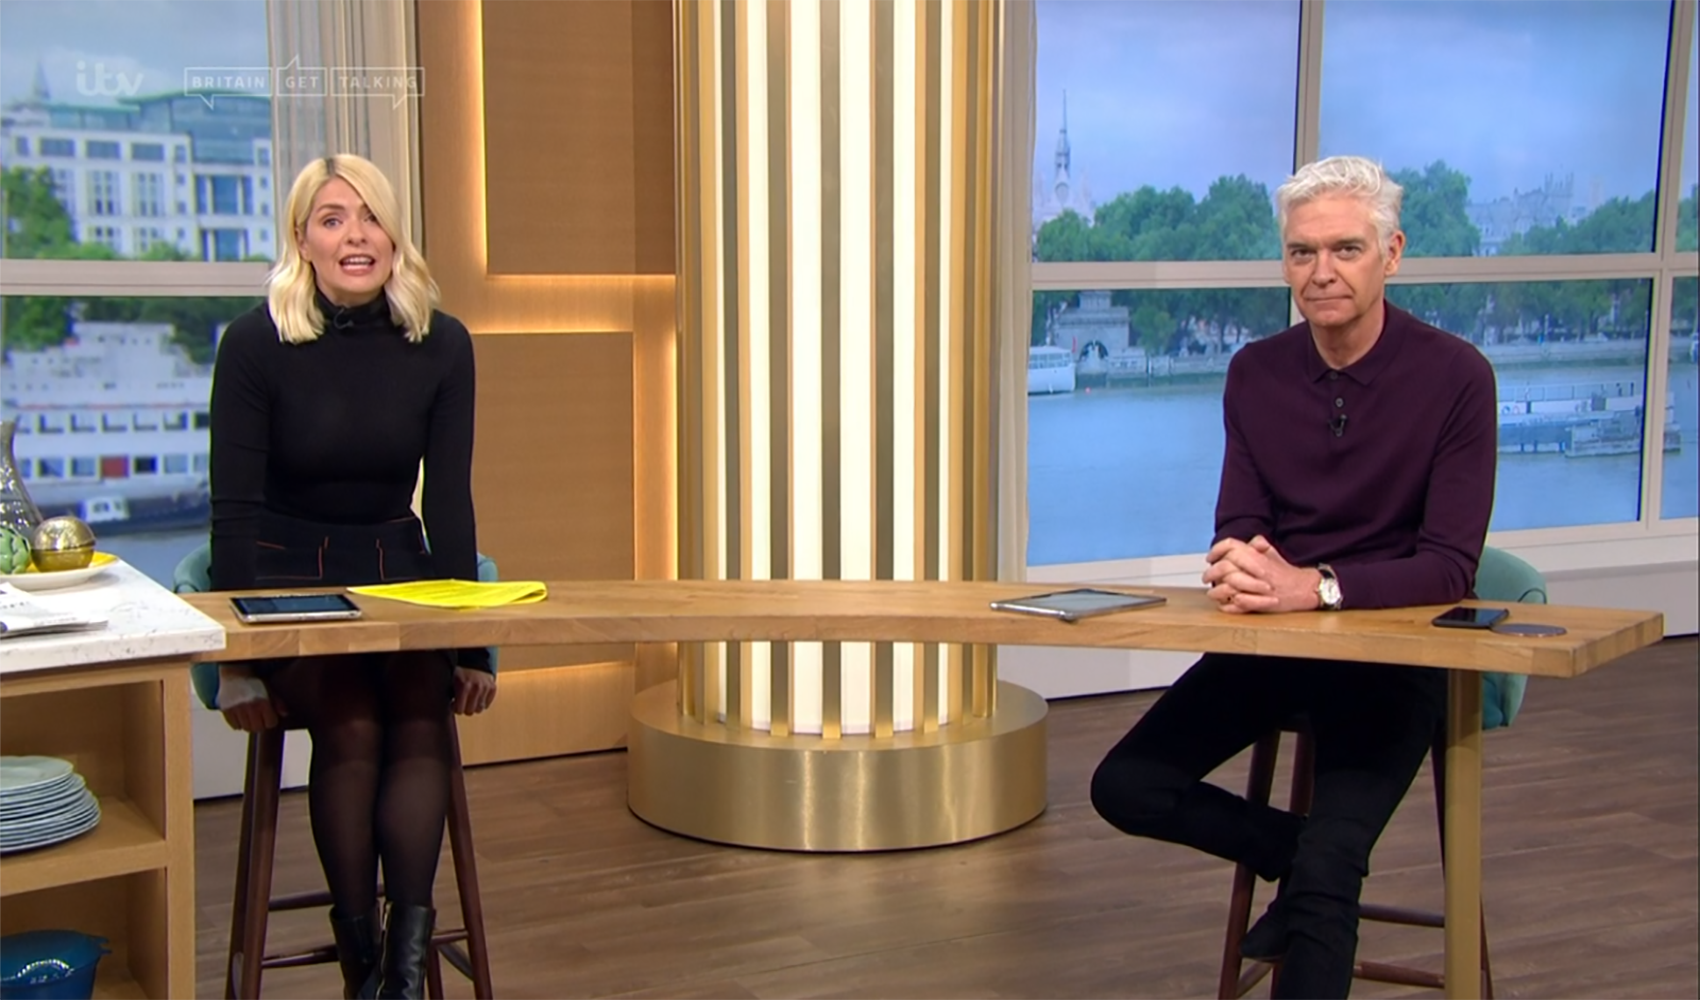 This Morning viewers slam show for 'useless' segment amid lockdown